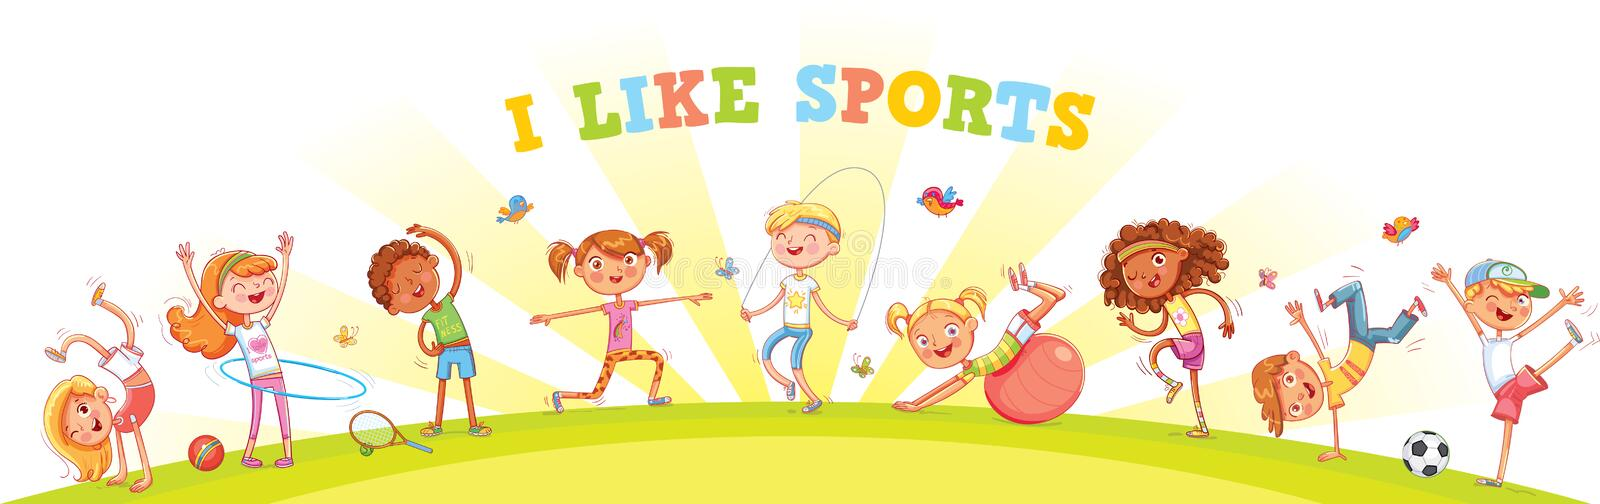 Children are engaged in different kinds of sports on nature background. Children`s panorama for your design. Template for advertising brochure or web site royalty free illustration